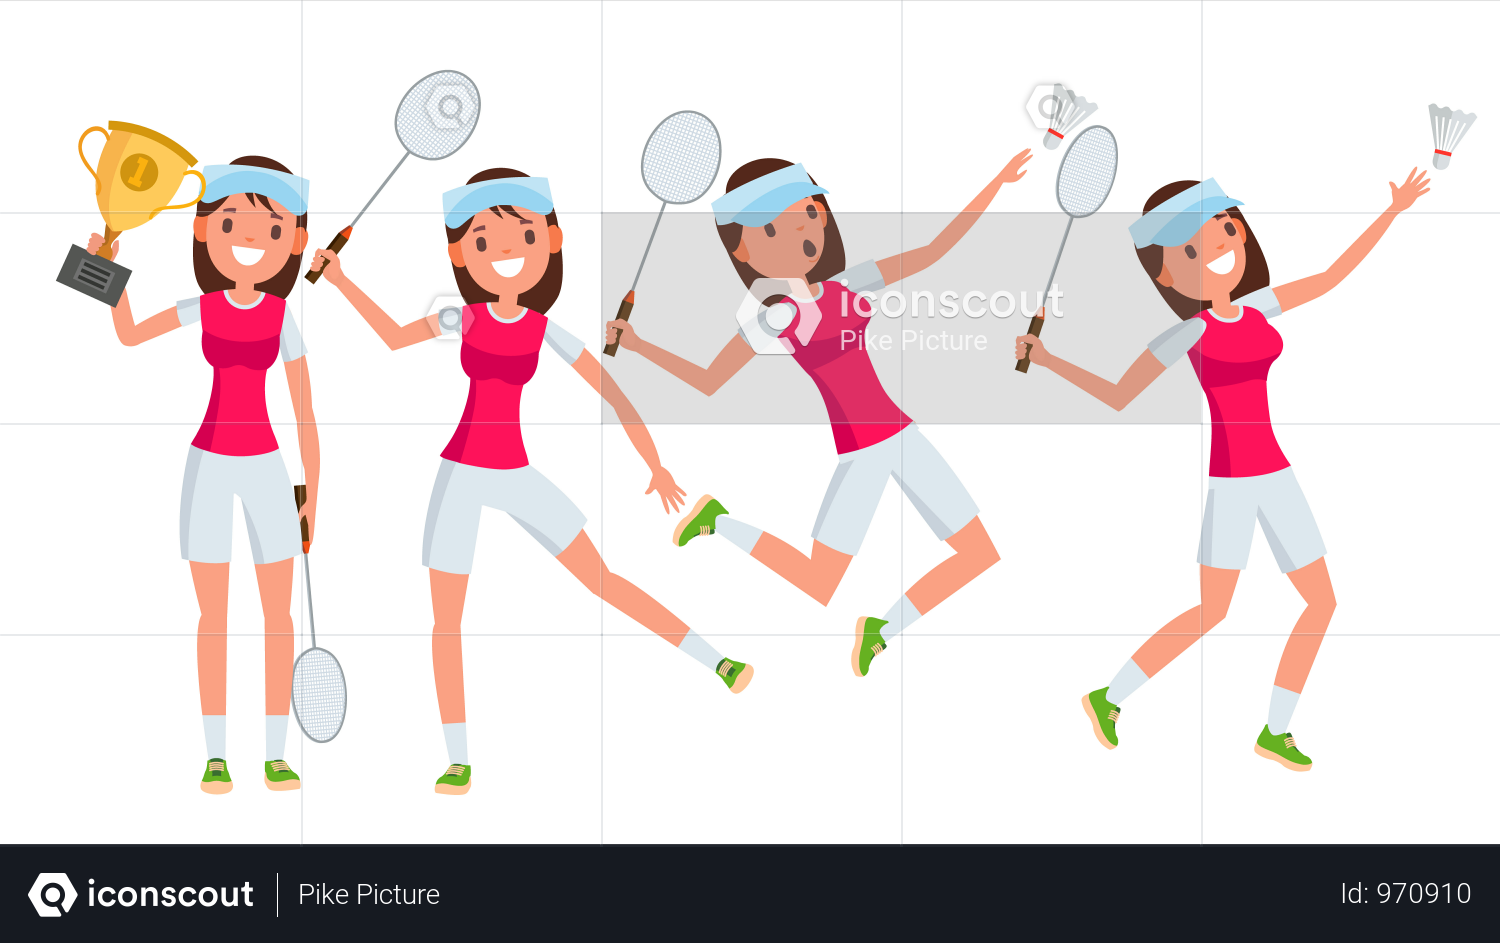 Premium Badminton Young Woman Player Vector Girl Athlete Player Jumping Practicing Flat Cartoon Illustration Illustration Download In Png Vector Format Badminton Athlete American Football Players